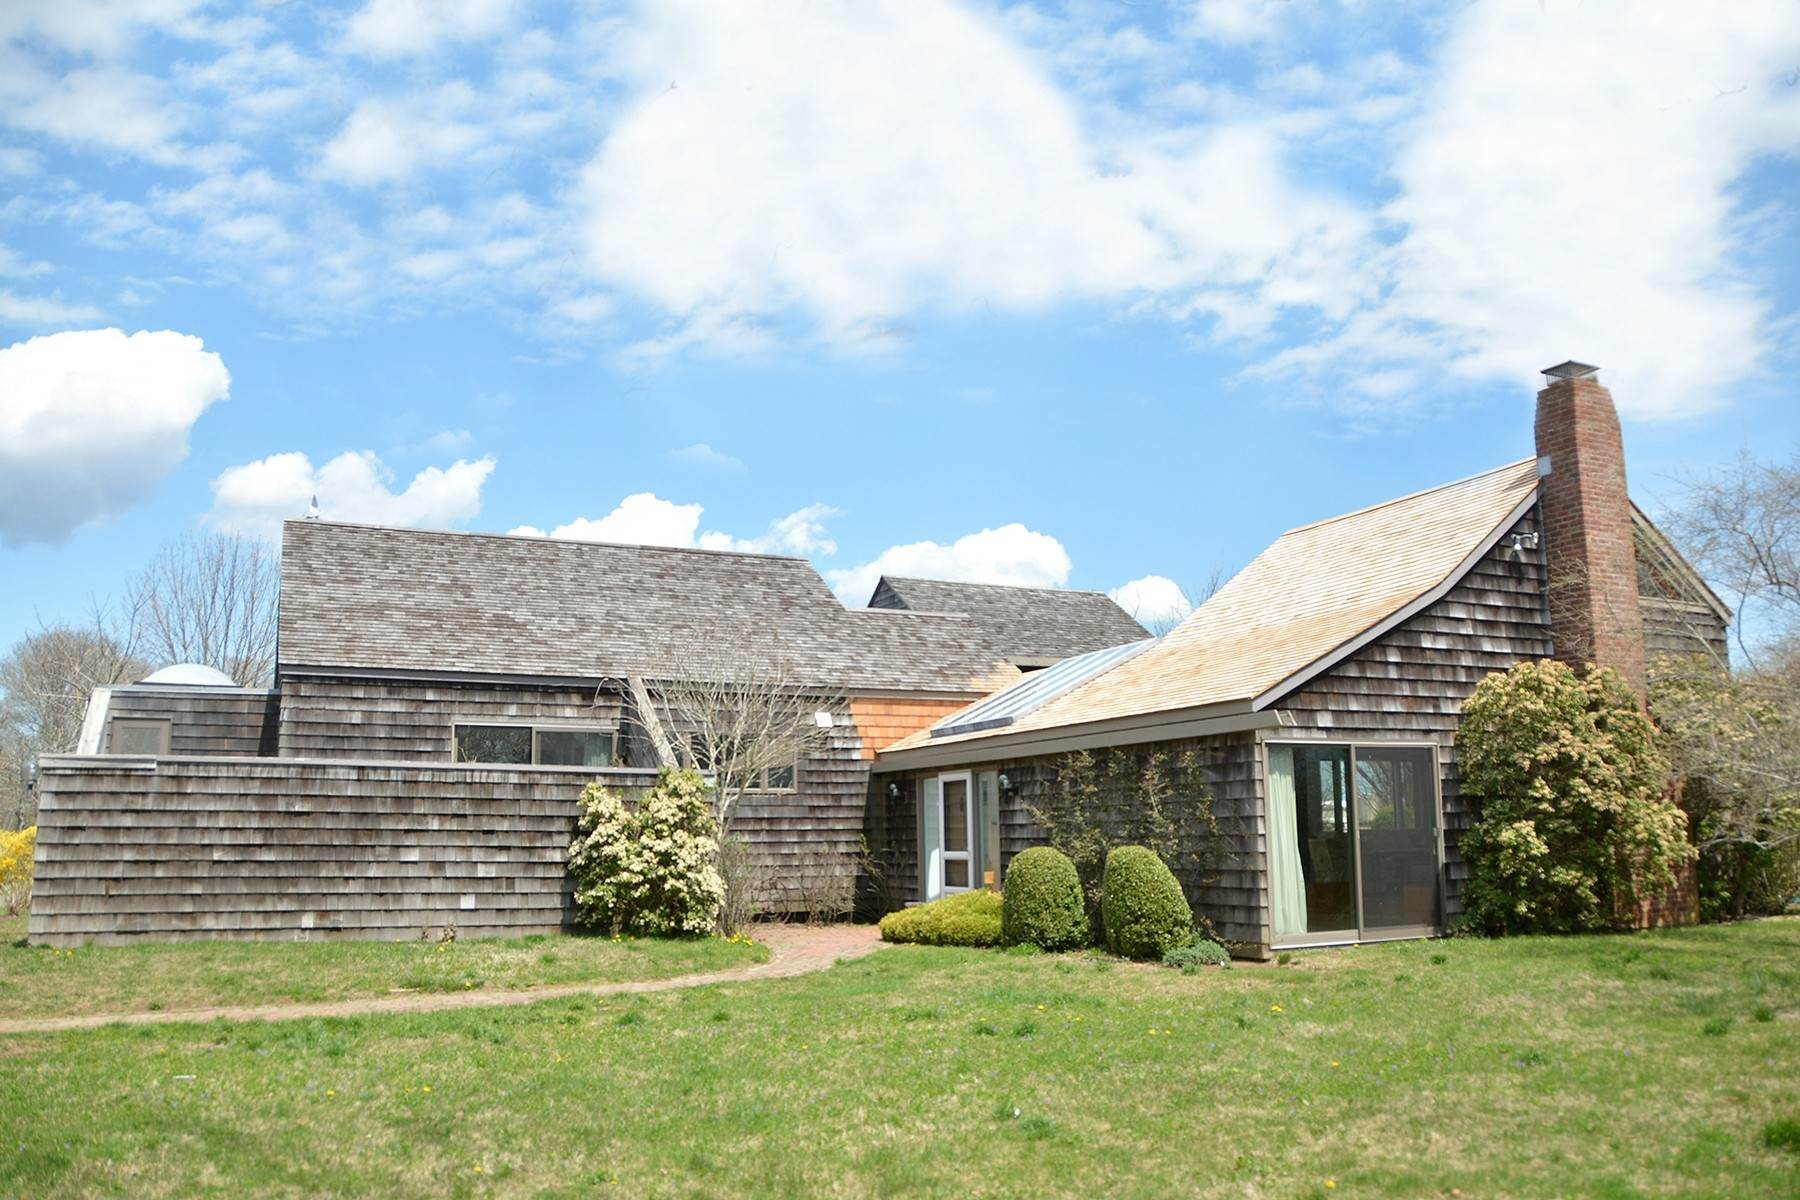 19. Other at Sagaponack South Near Ocean Sagaponack Village, NY 11962